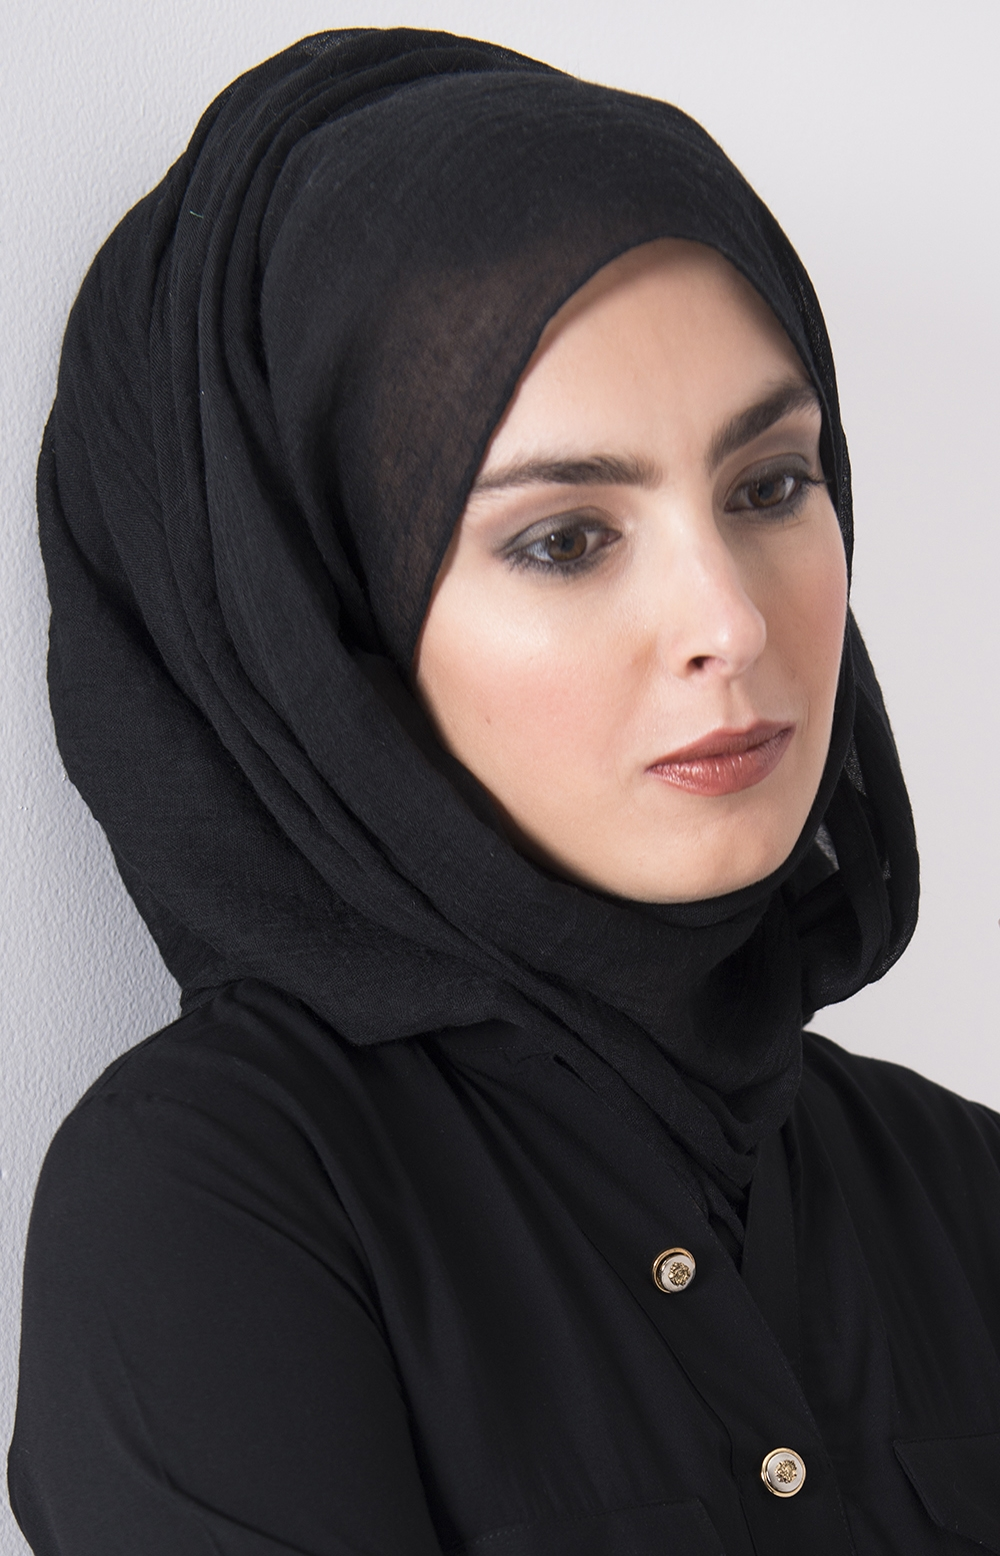 Dubai Beautiful Girl Wallpaper Of Head Cases And Head Scarves Margo Catts